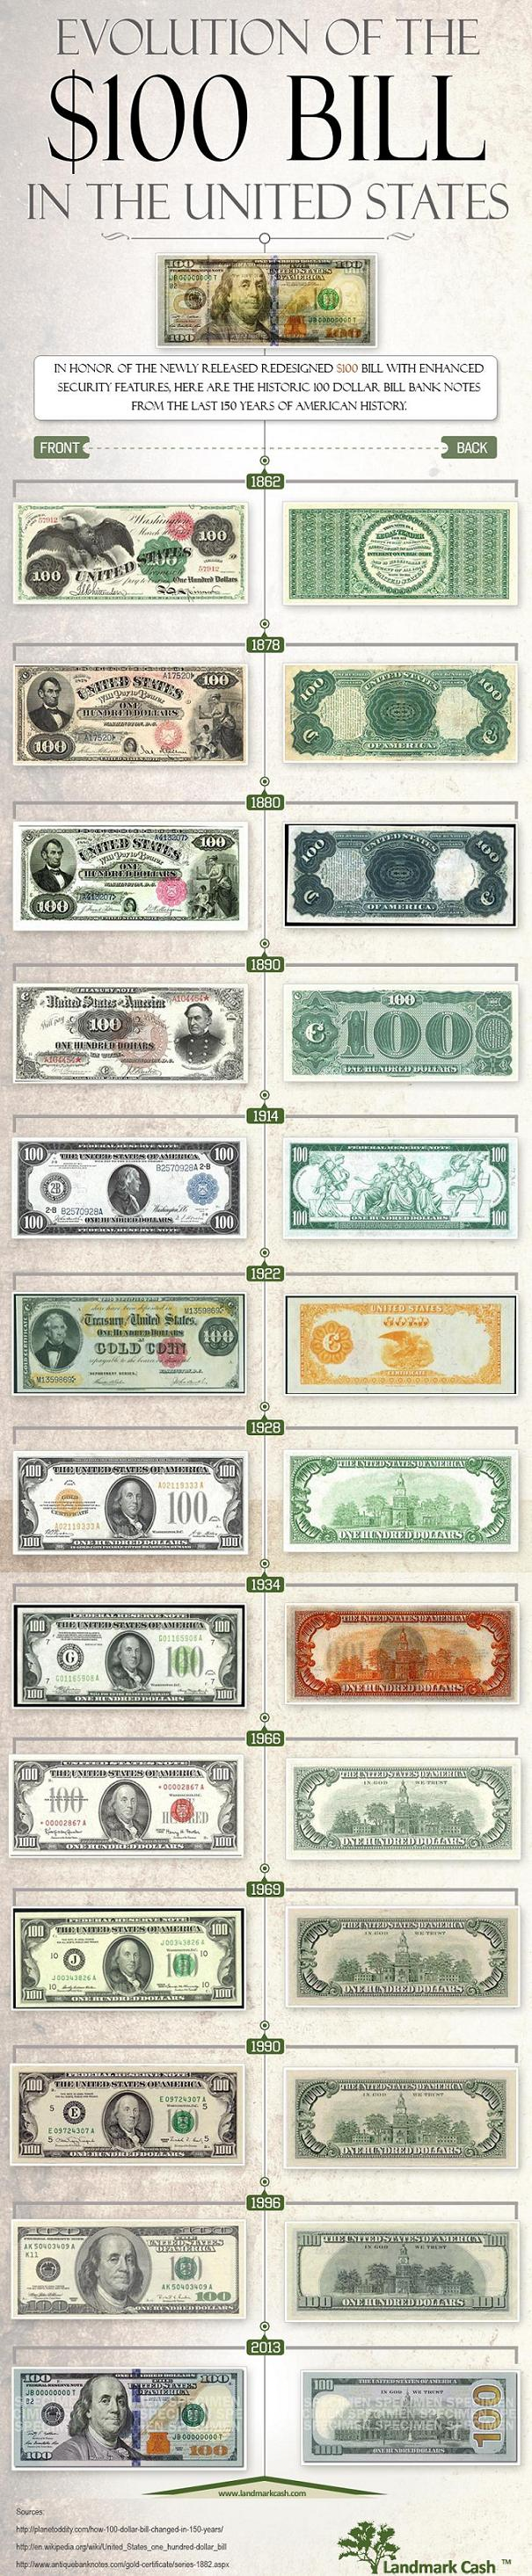 Evolution-of-the-$100-Bill